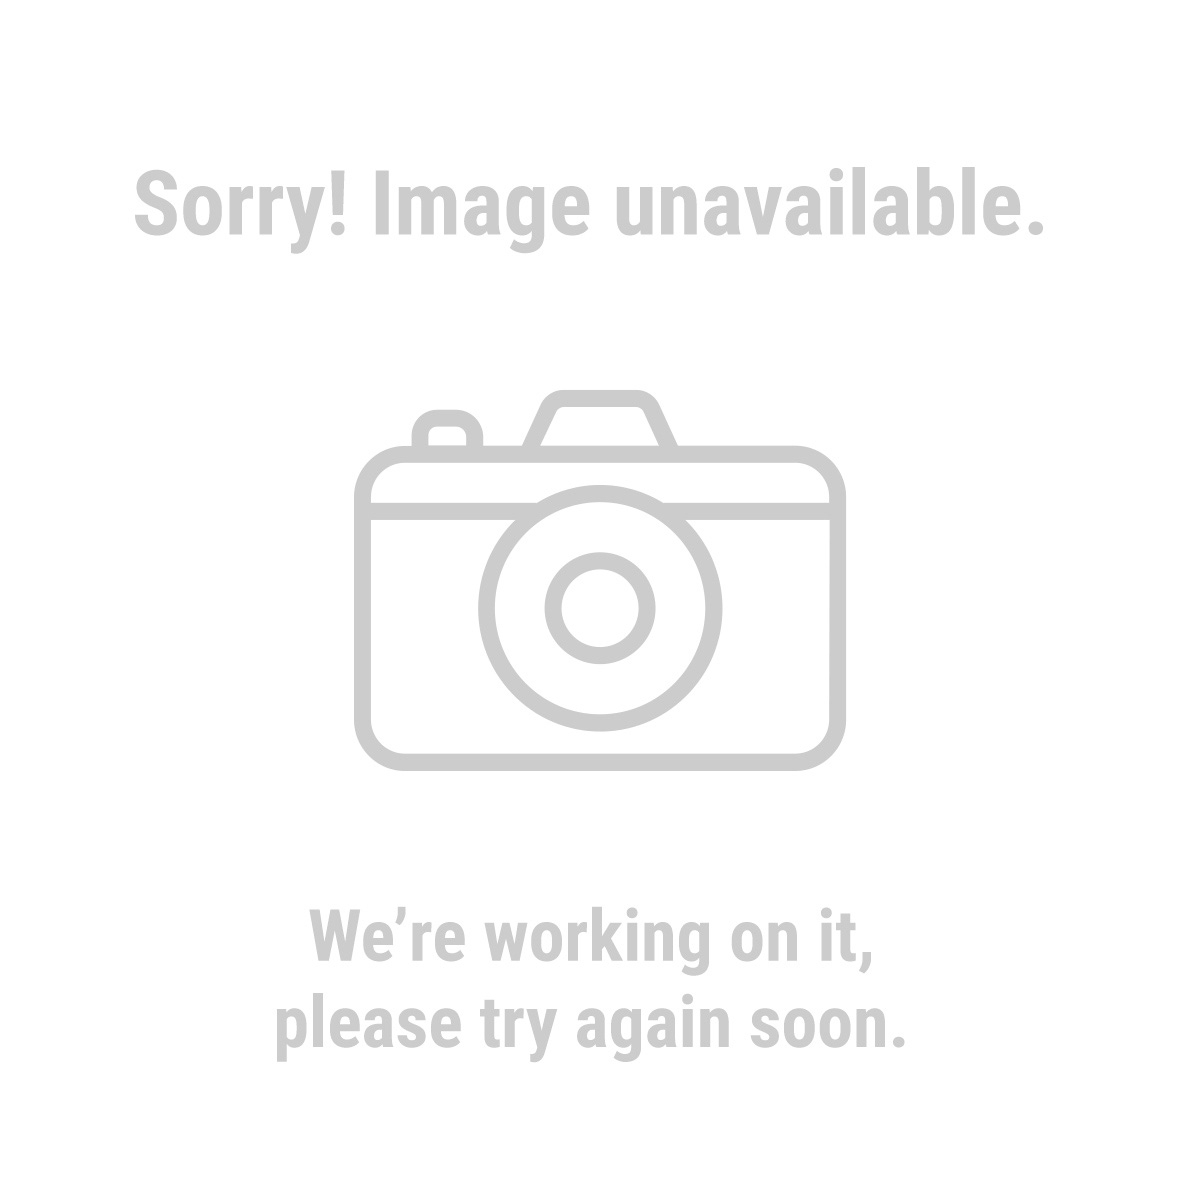 Haul-Master® 66187 250 Lb. Truck Ladder Rack